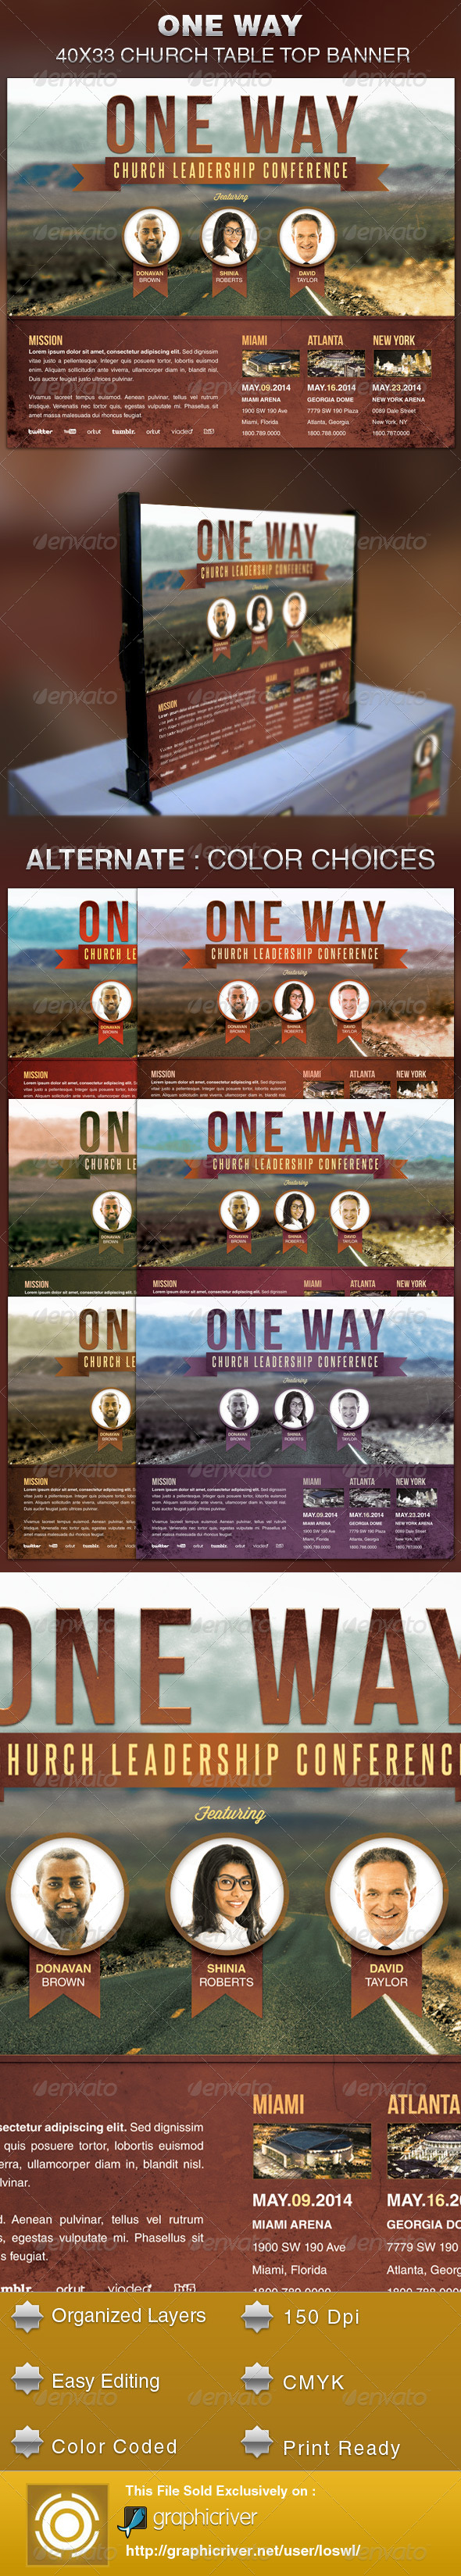 One Way Church Table Top Banner Template - Signage Print Templates